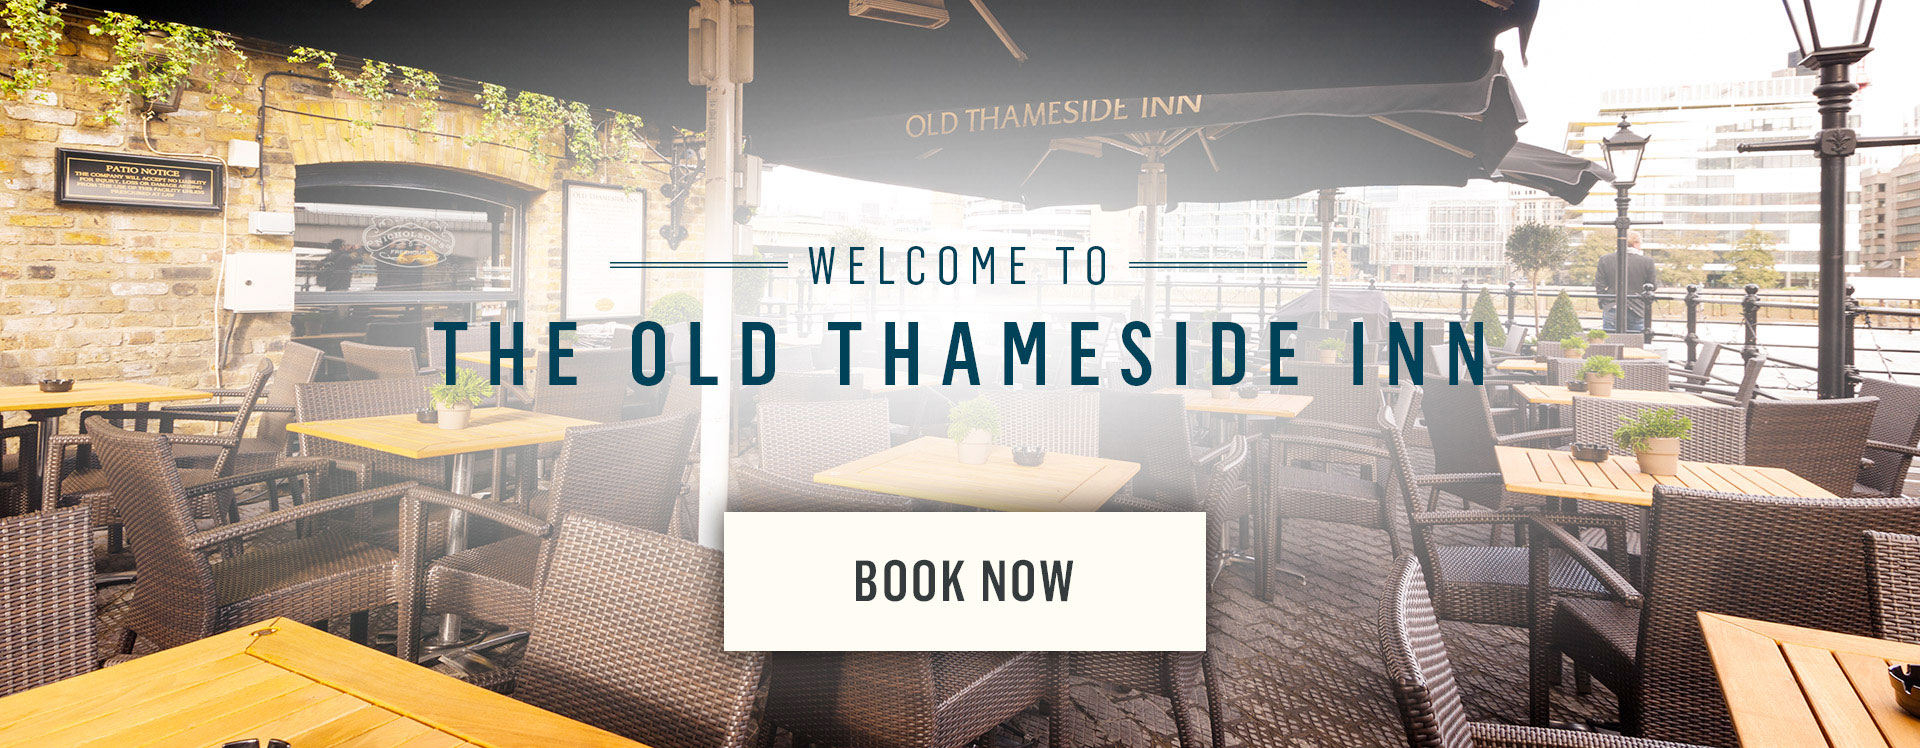 Welcome to The Old Thameside Inn - Book Now